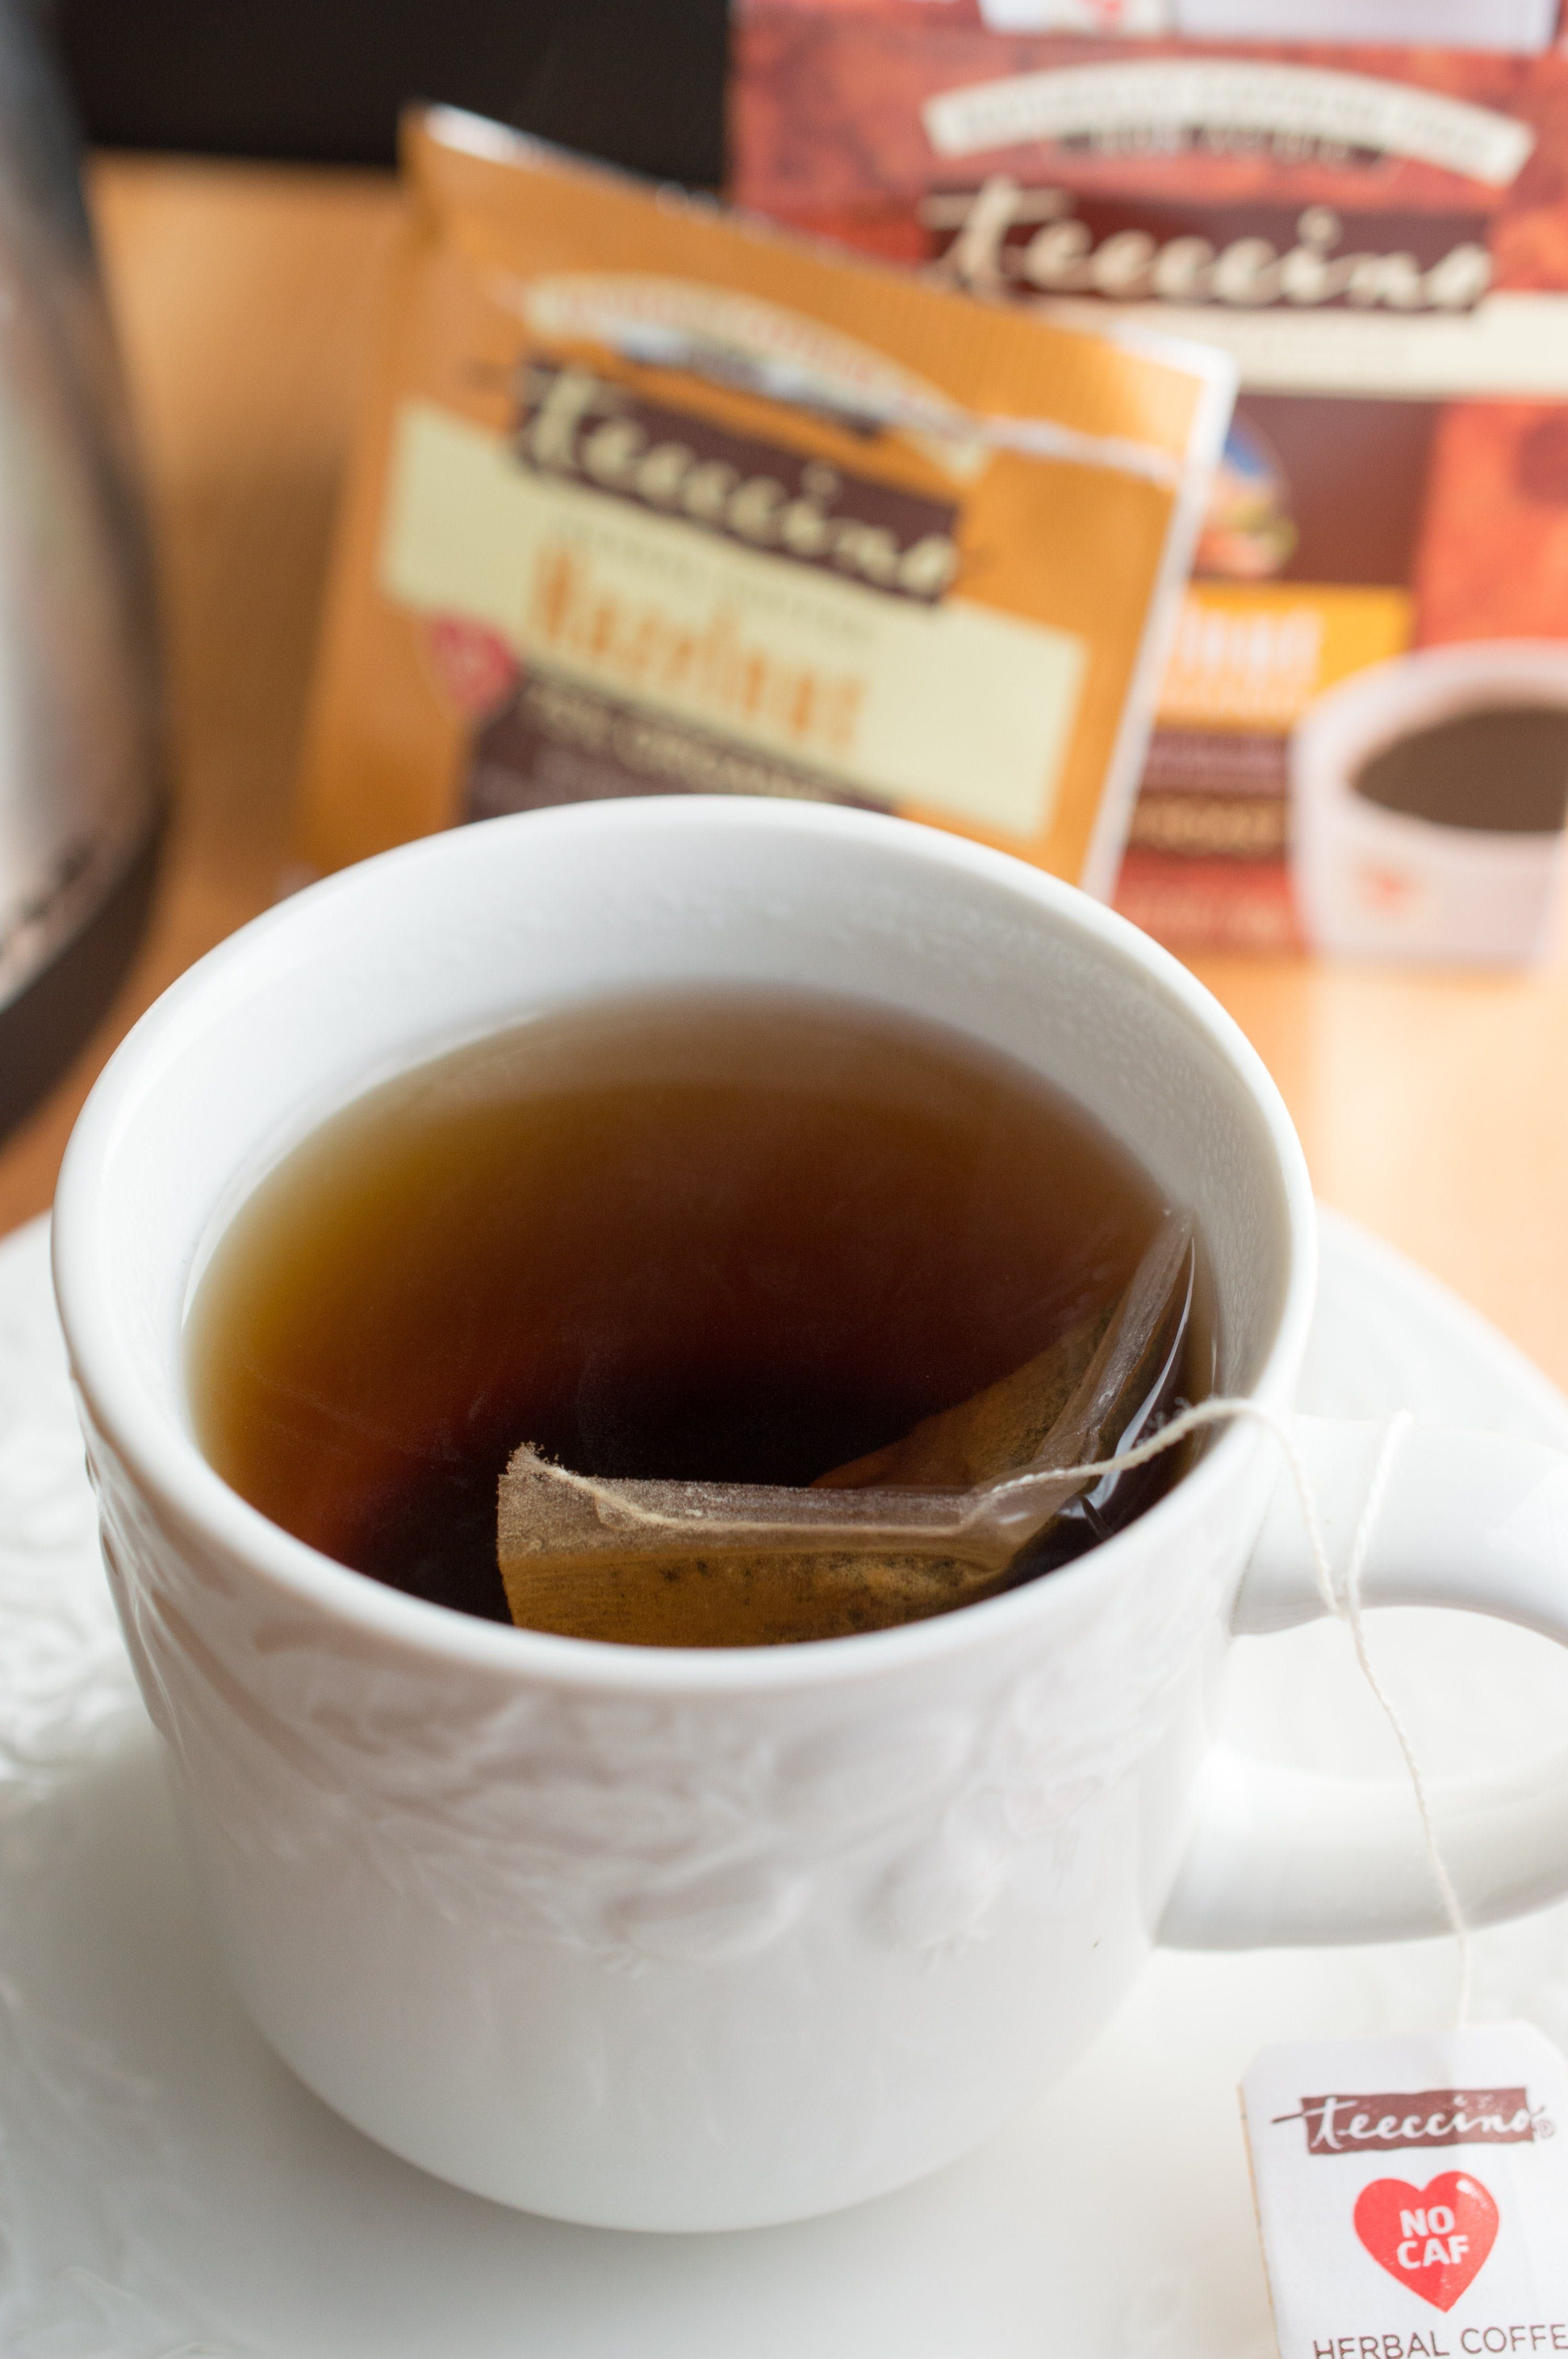 Kick your caffeine habit with these 4 coffee substitutes